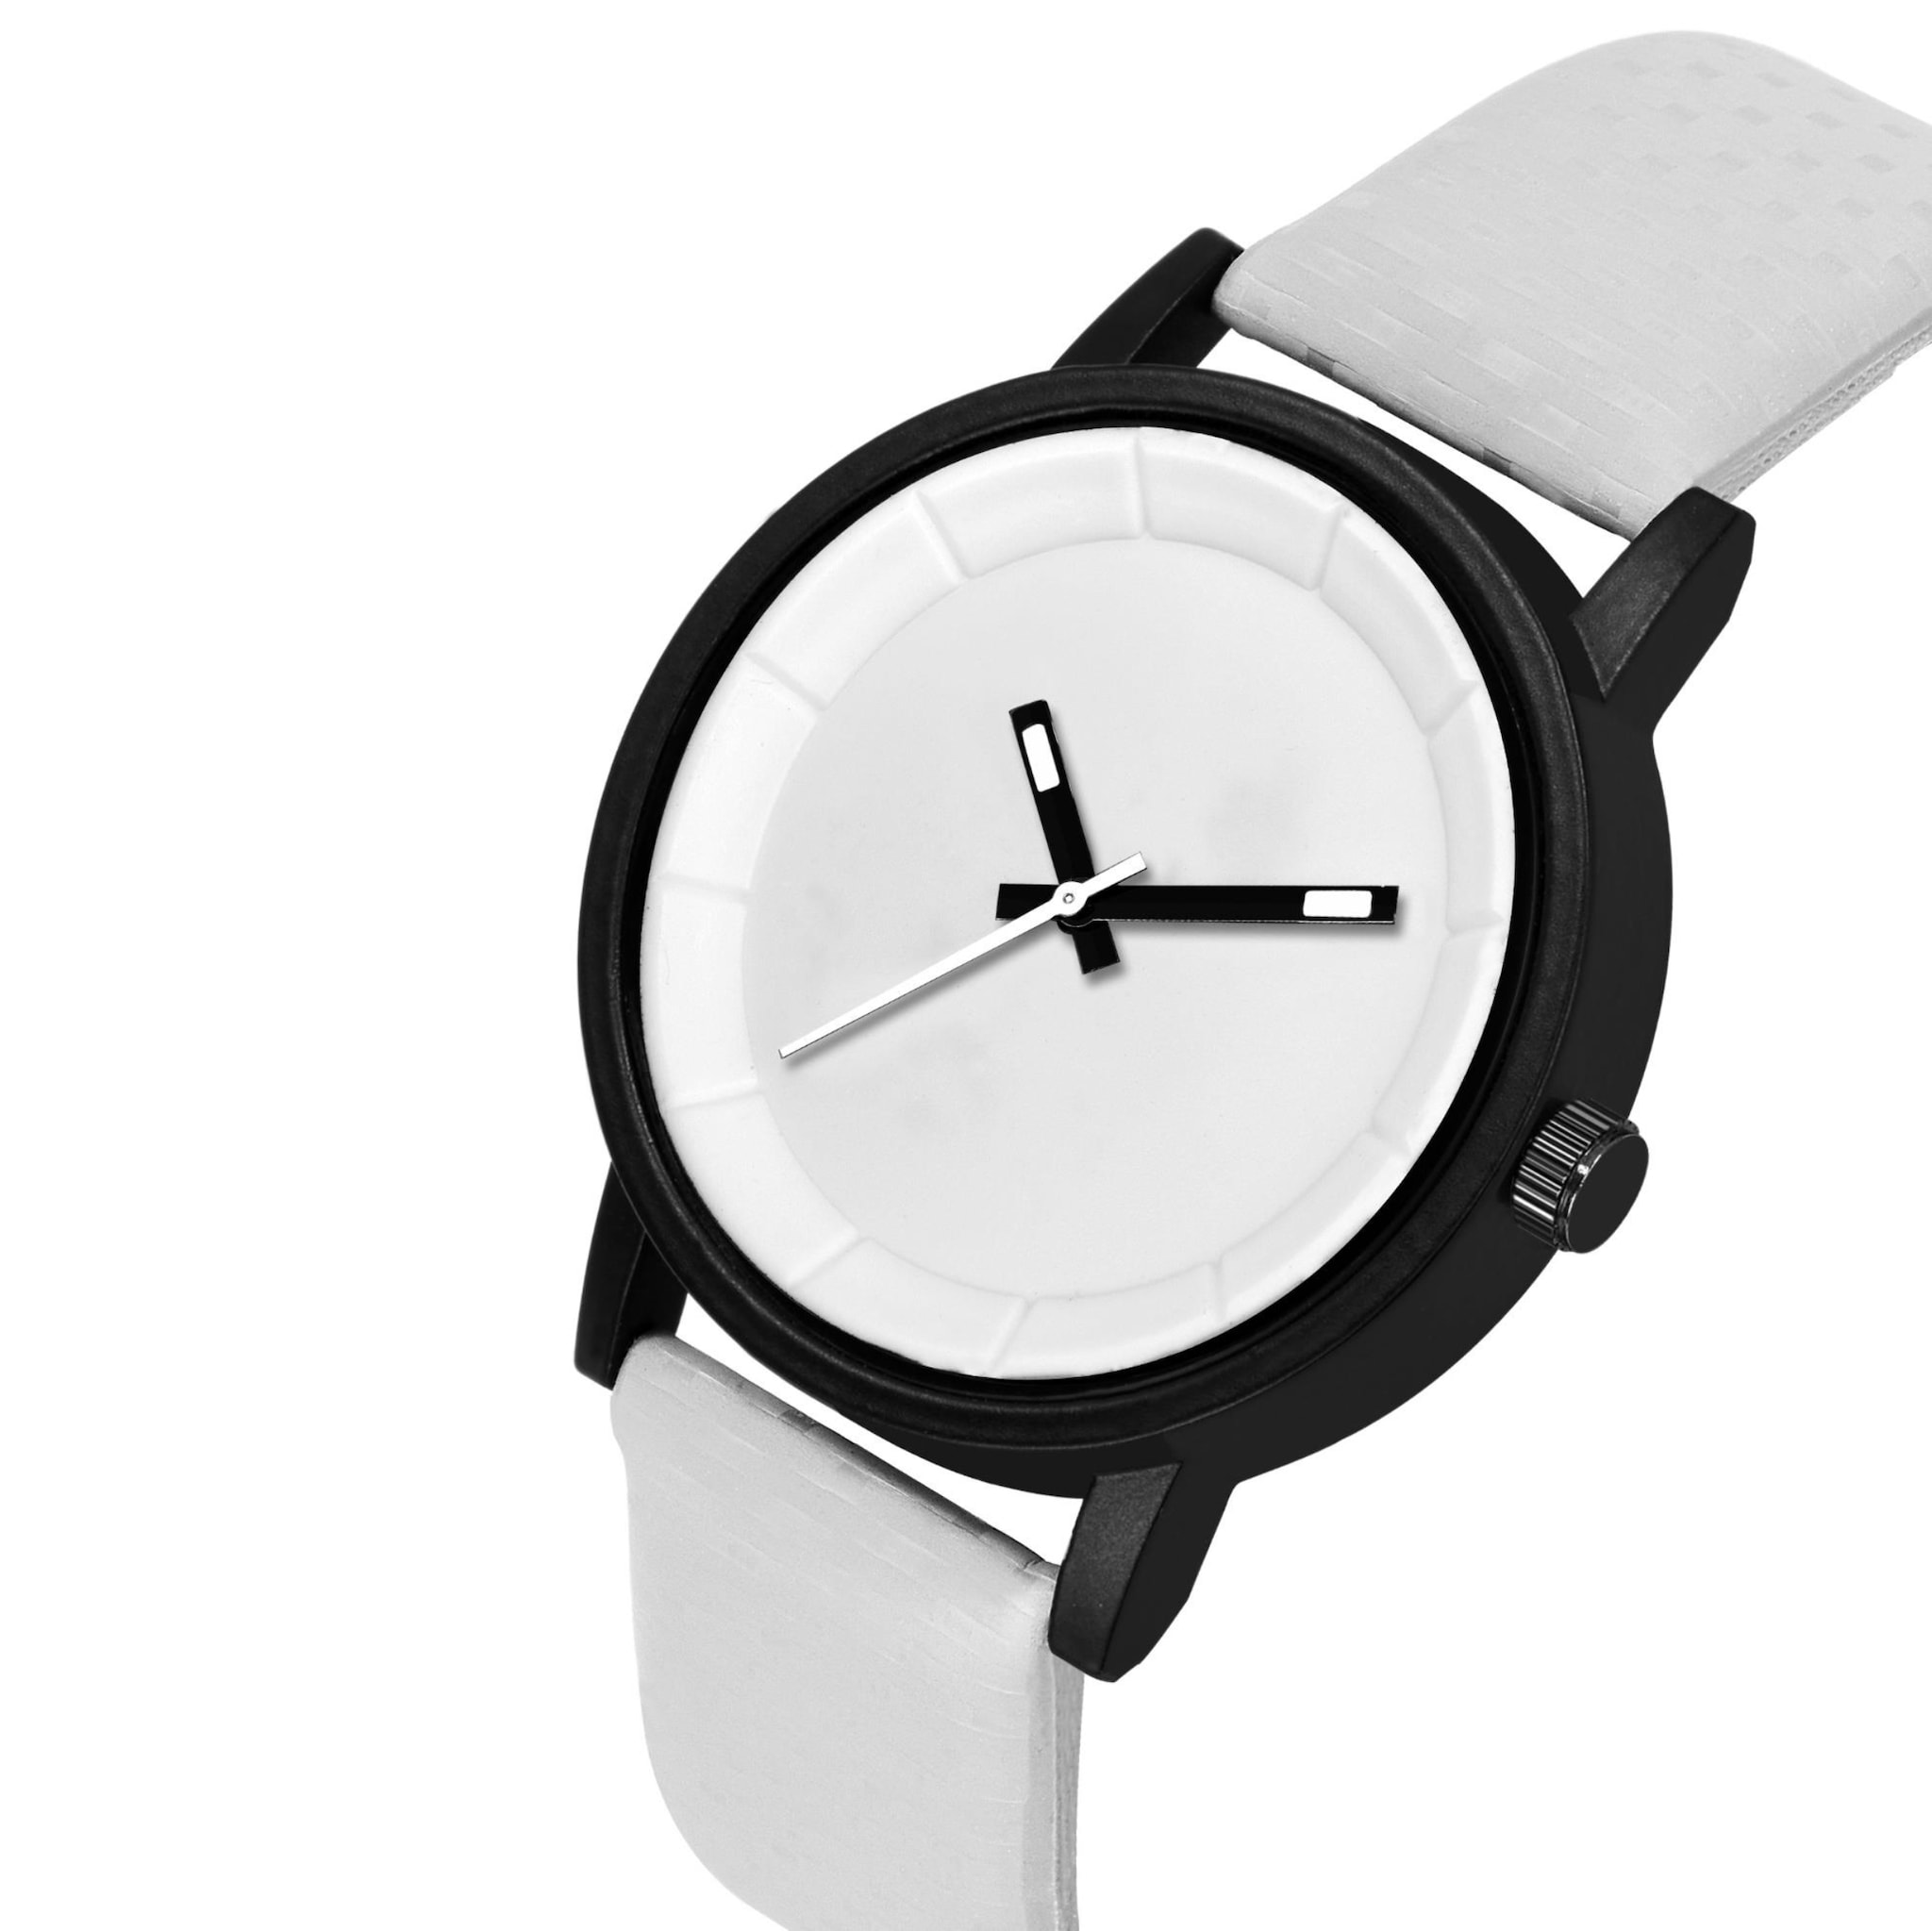 Fashion Now New Look Formal Men Wrist Watch (White)